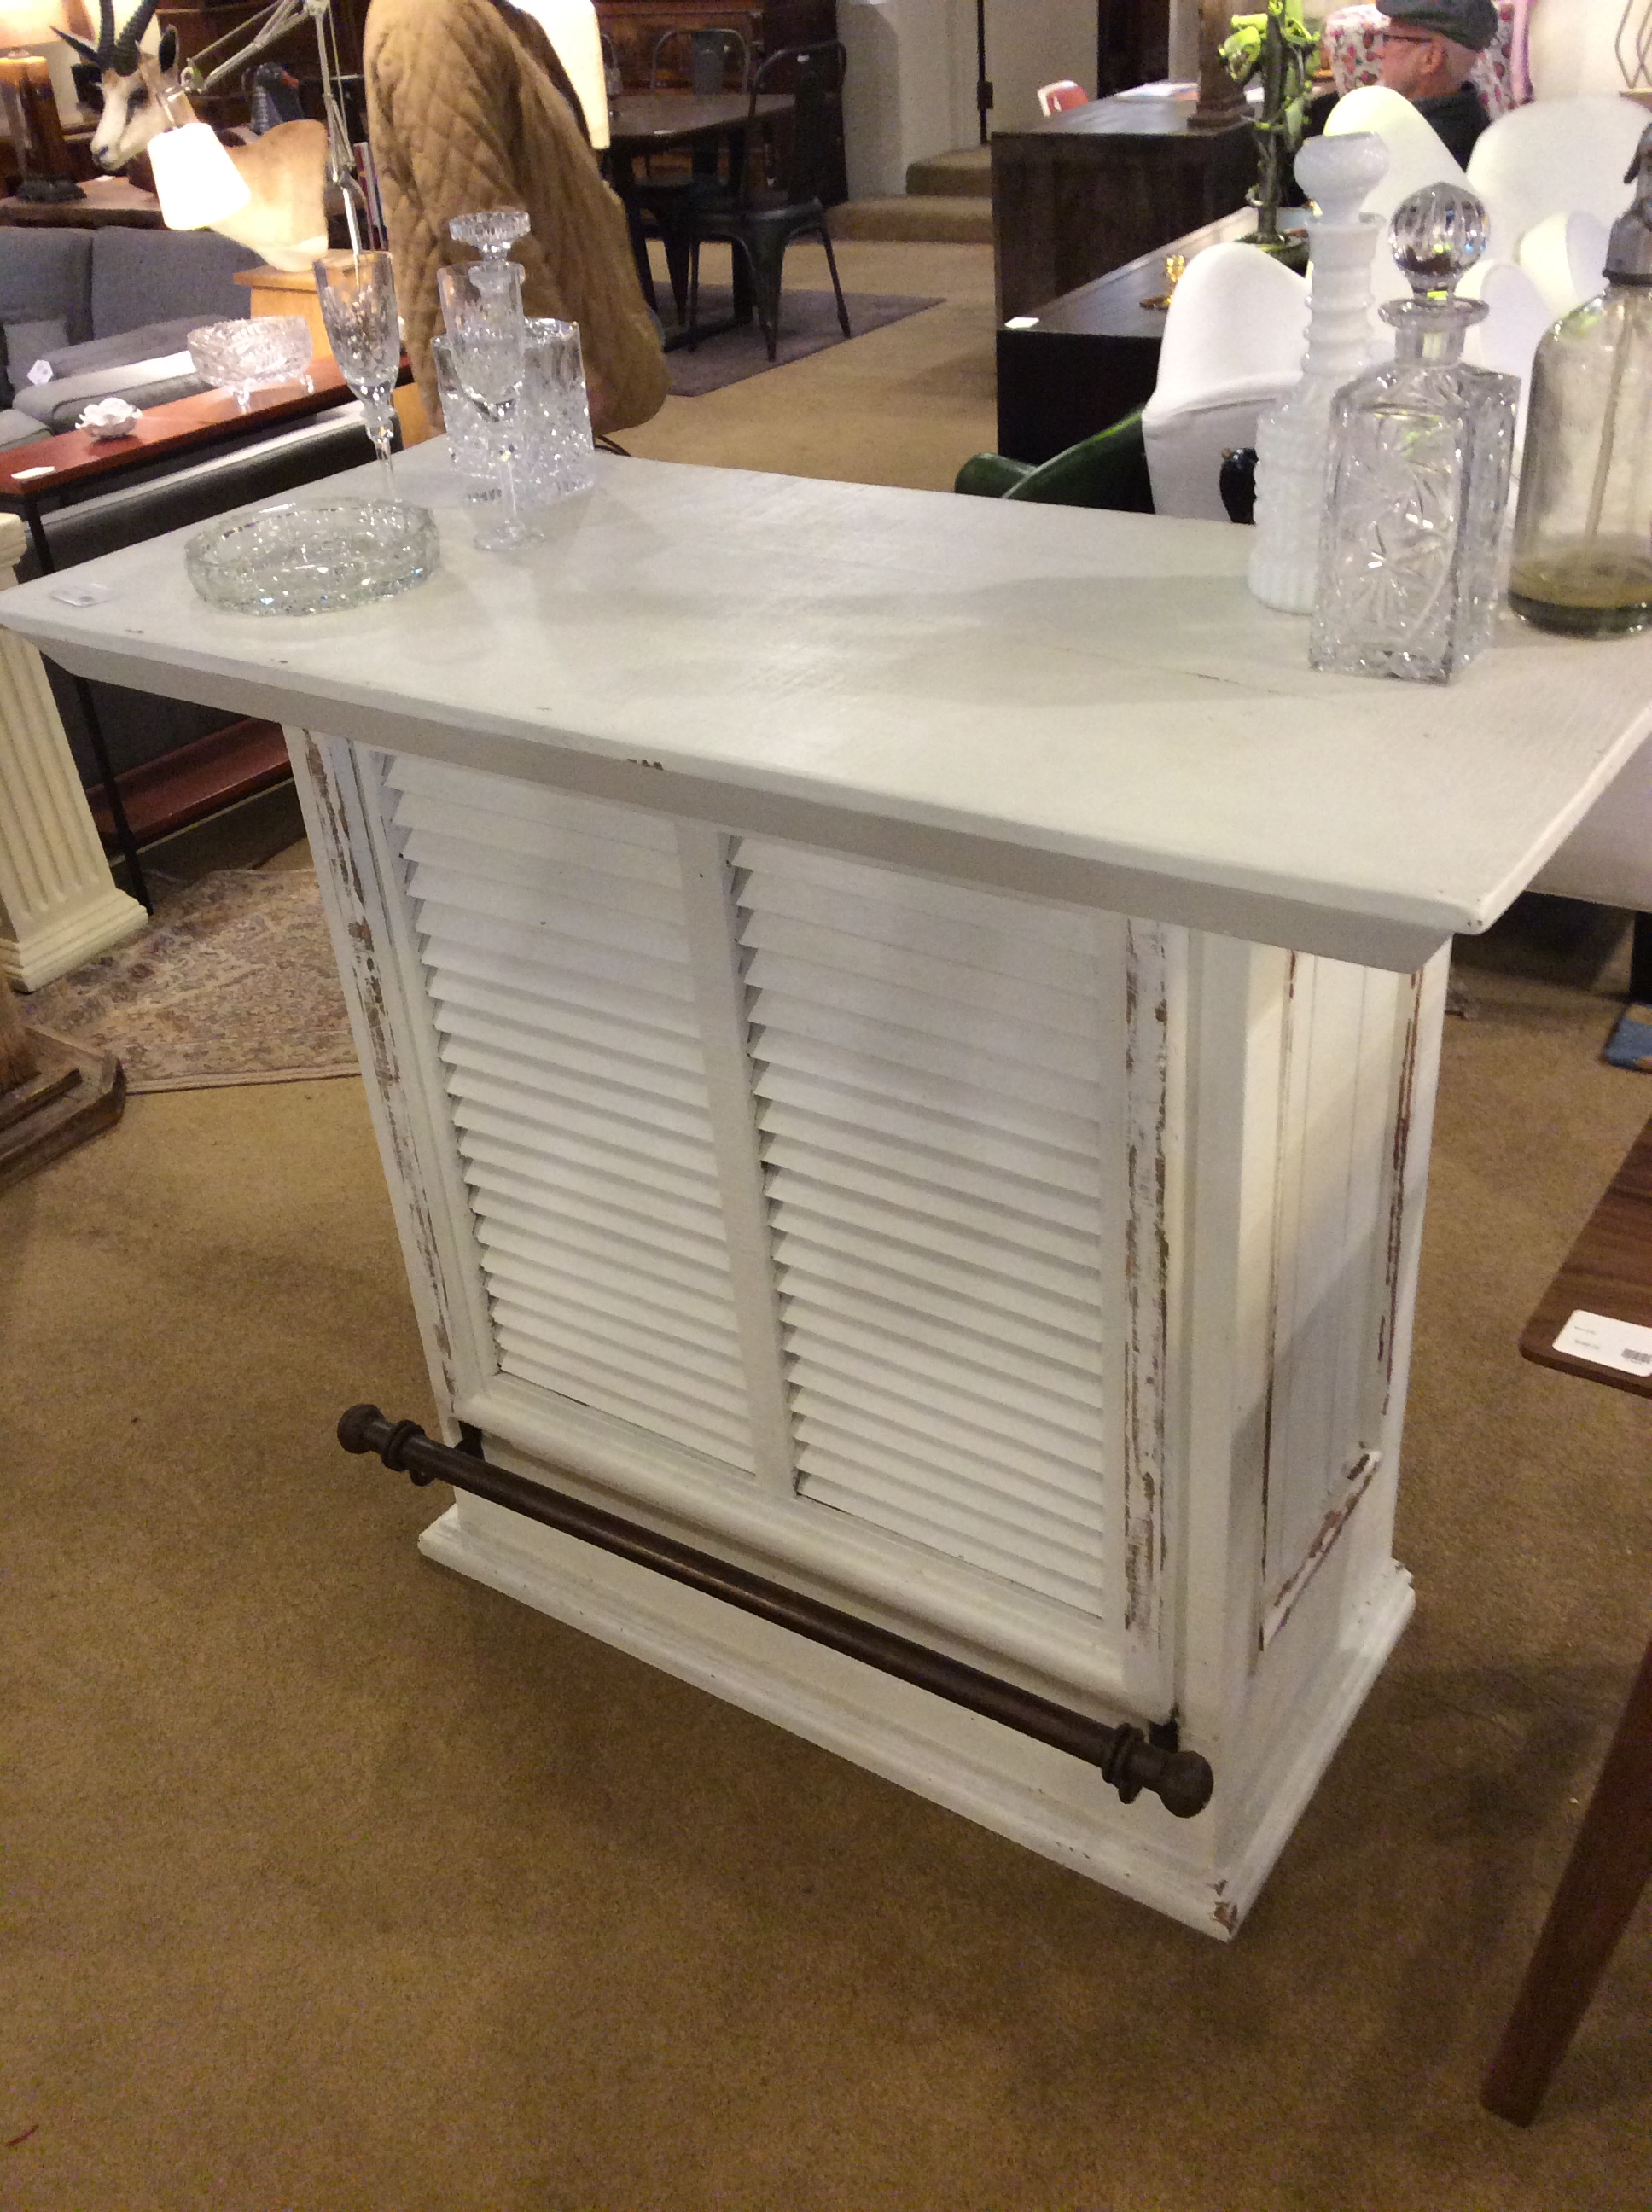 Description: White Rustic Bar Cabinet.